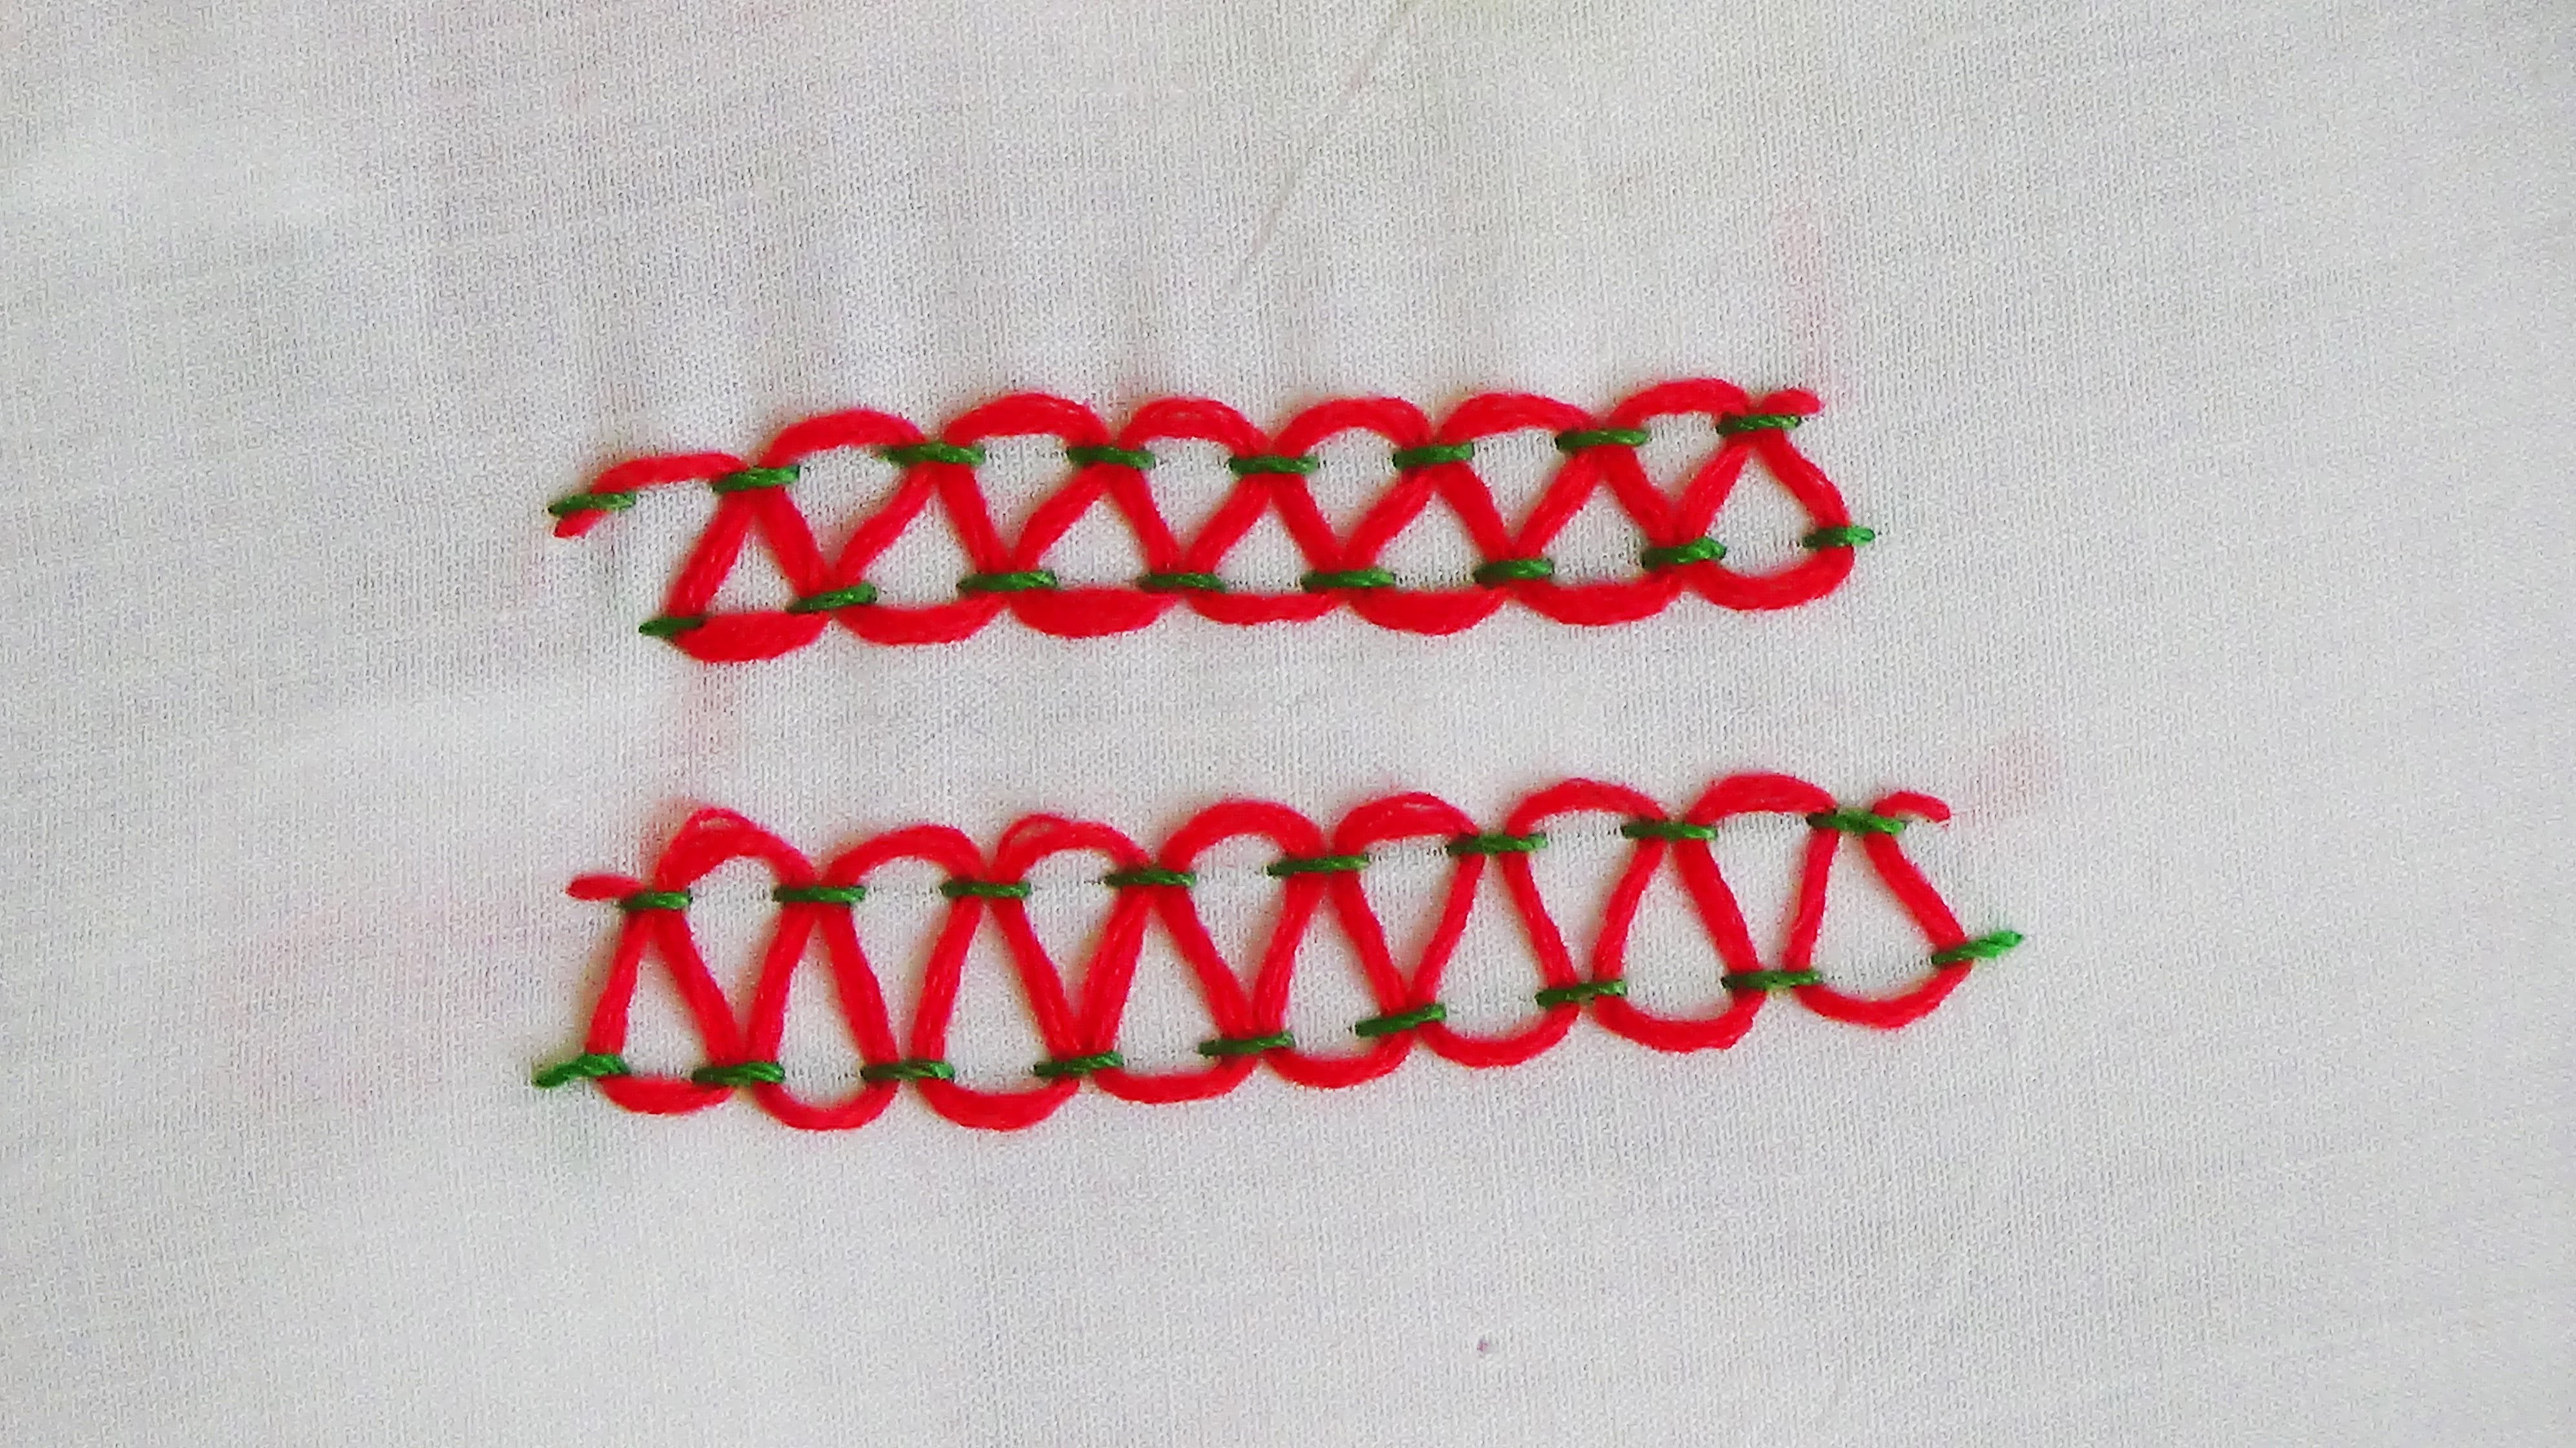 Hand Embroidery: Stepped Threaded Running Stitch